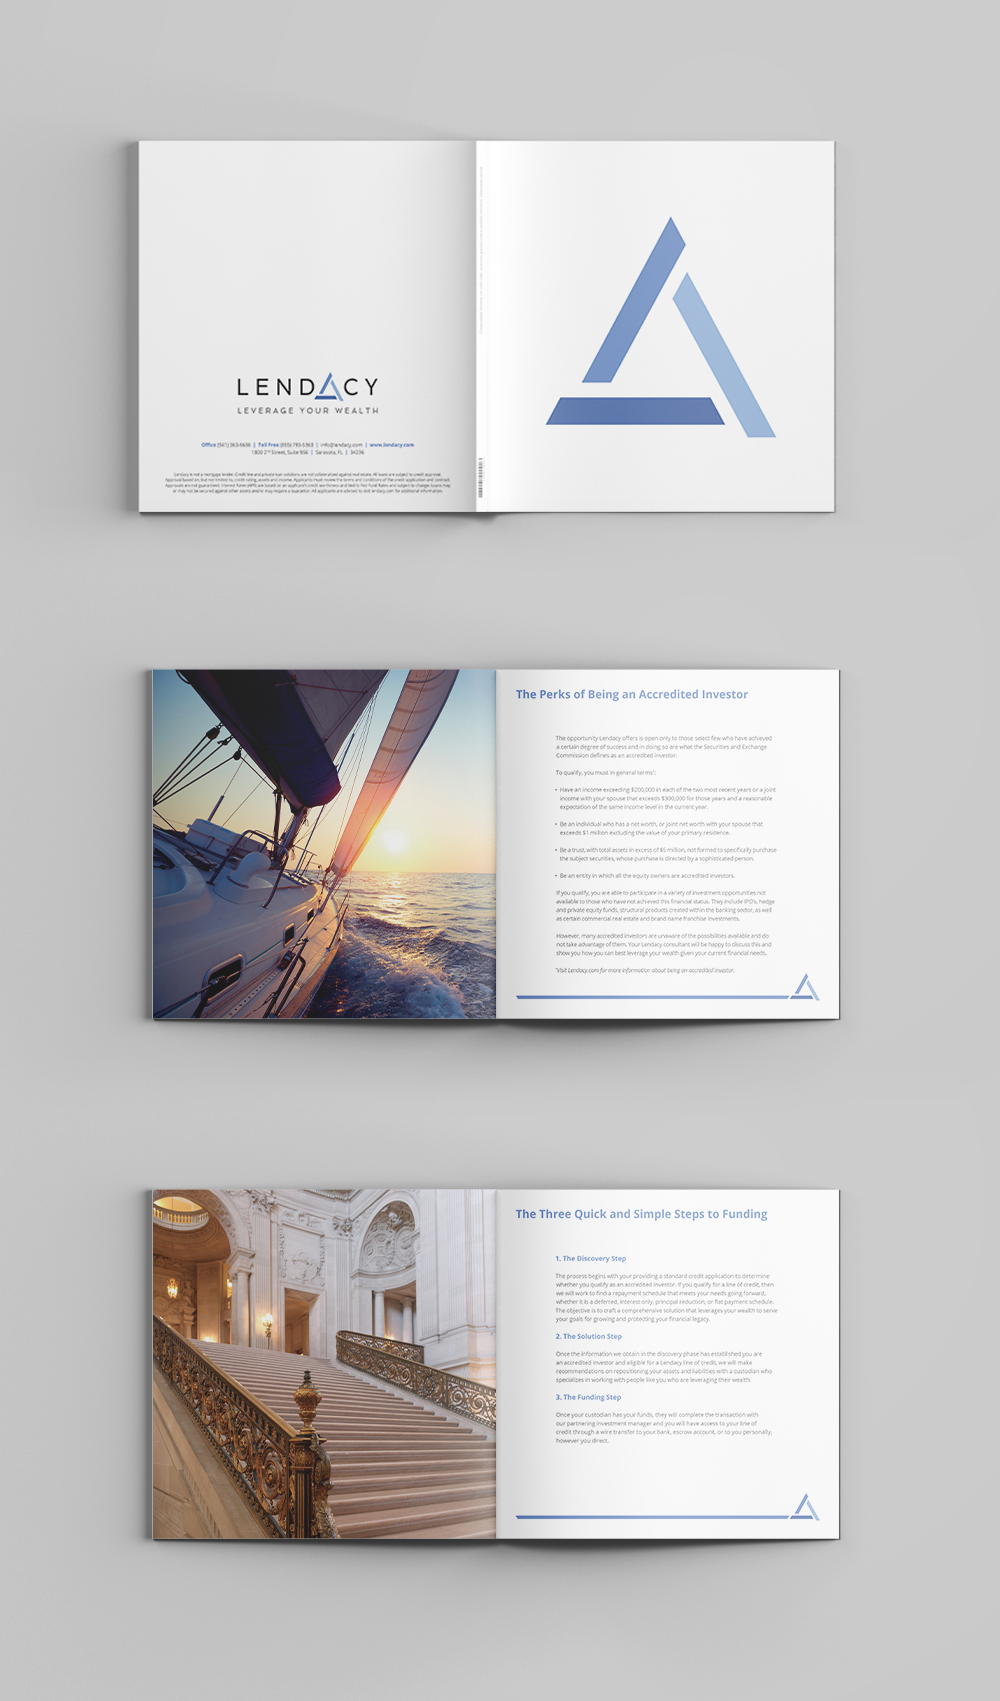 PROJECT: LENDACY LOOKBOOK CLIENT: LENDACY ROLE: DESIGNER, ART DIRECTOR